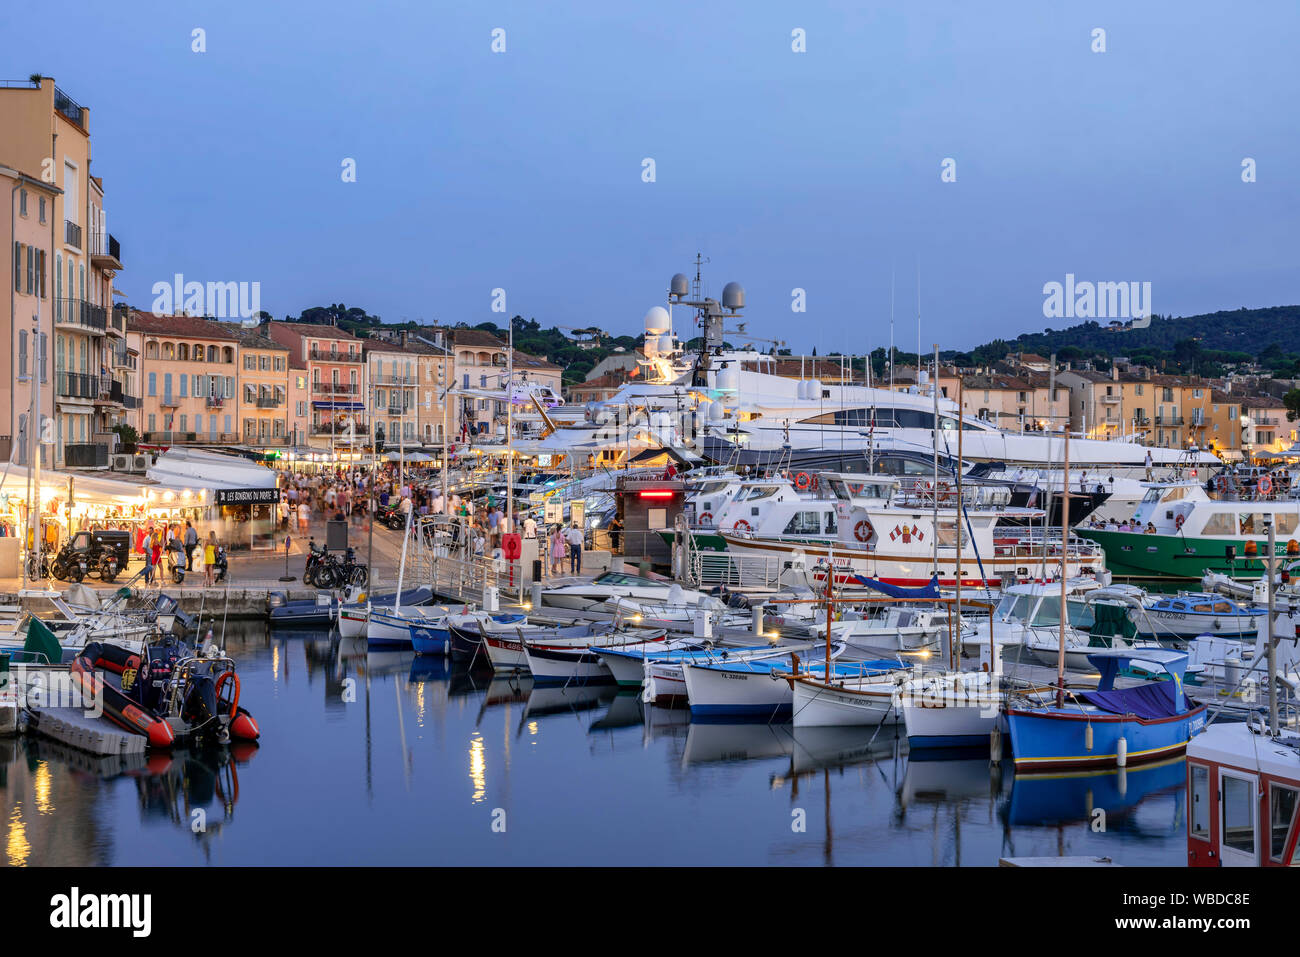 fishing boats and luxery yachts at Saint Tropez, Vieux Port, Var, Cote d'Azur, south france, france, Stock Photo